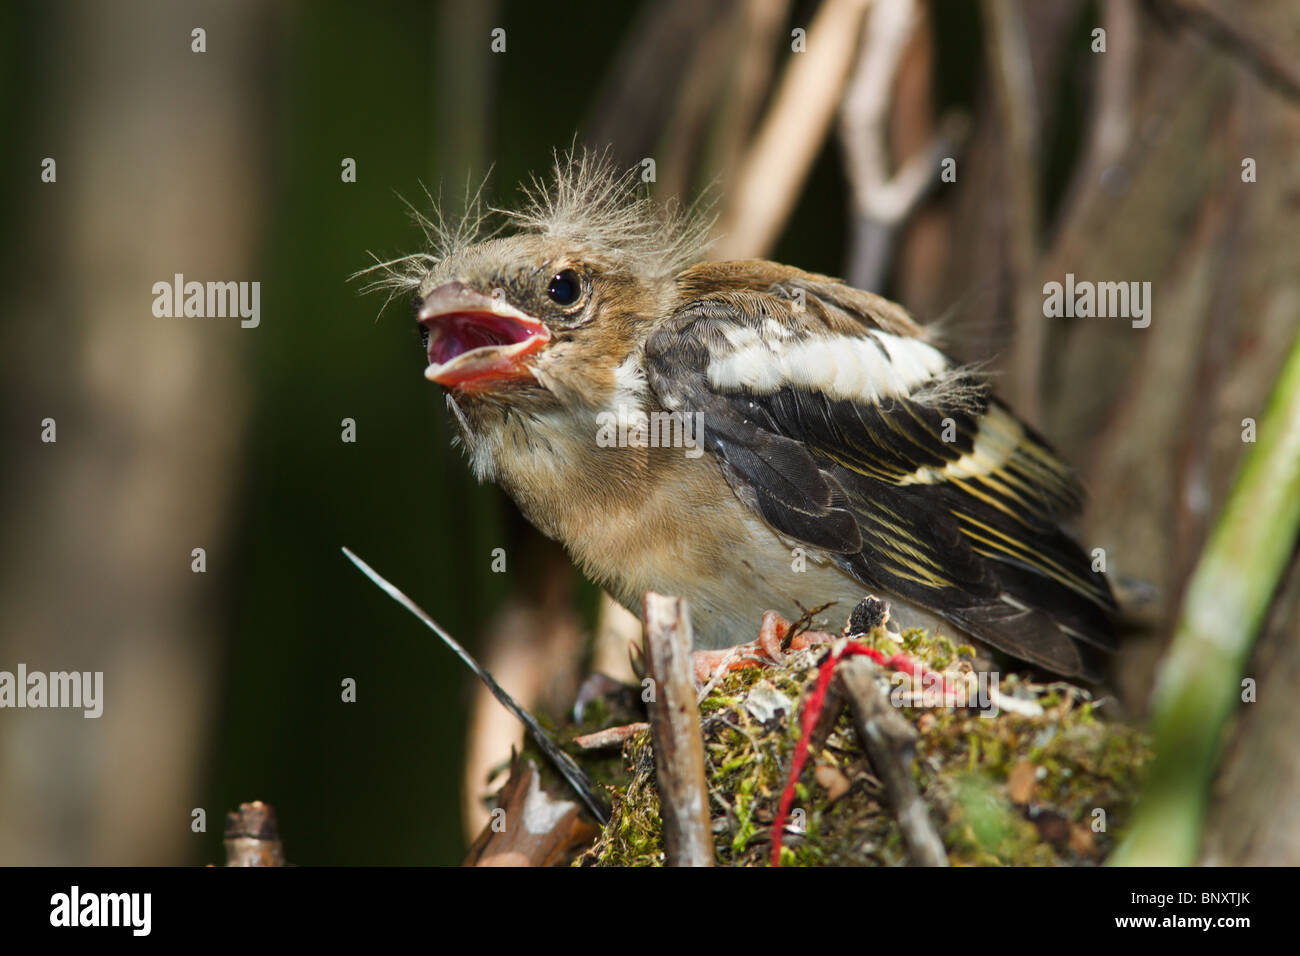 Зяблик, The chick of the common finch (Fringilla coelebs) in the nest. - Stock Image